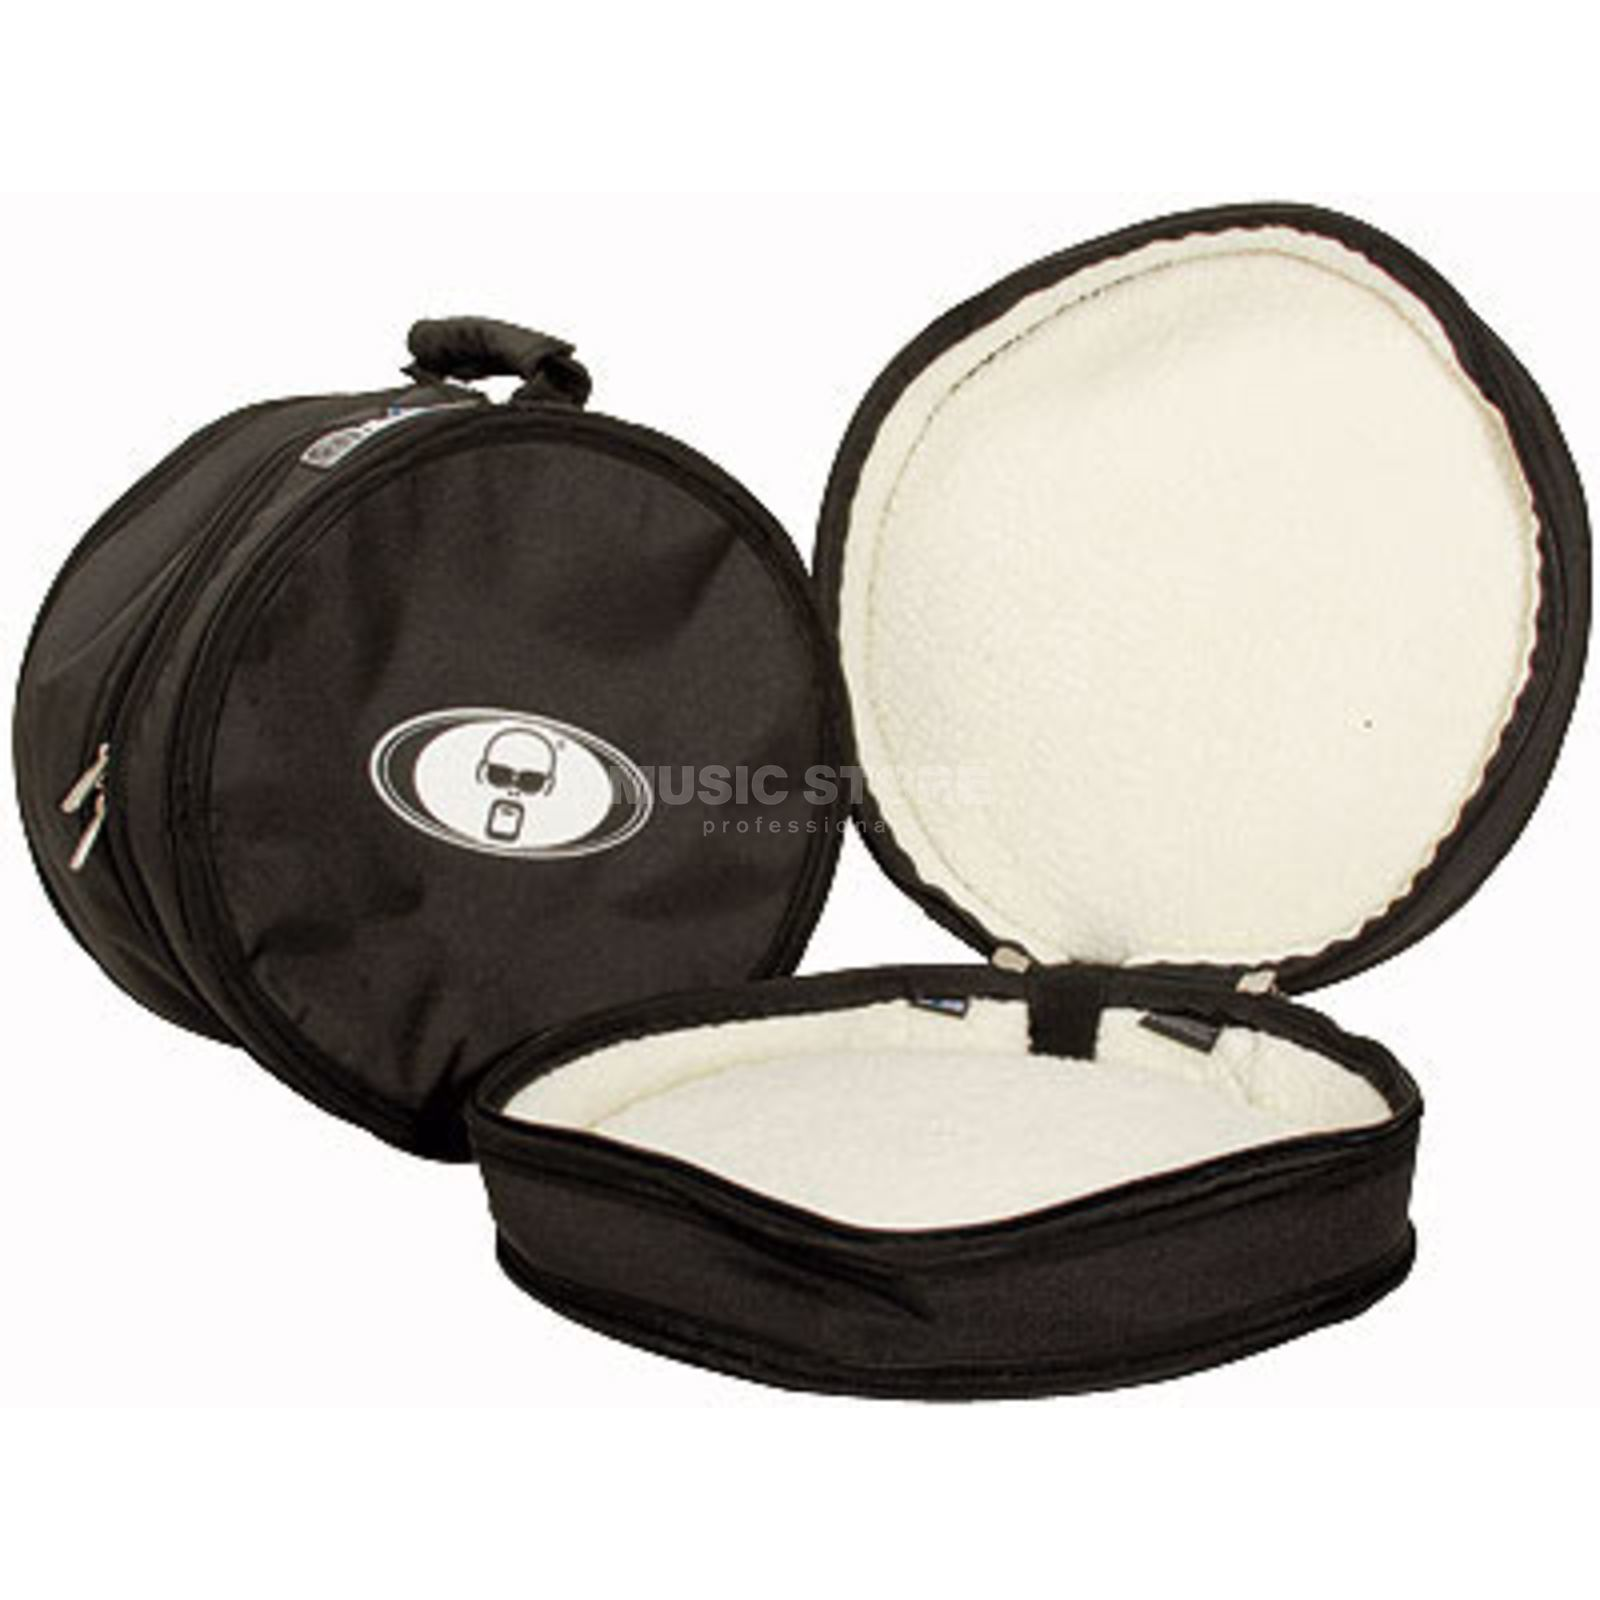 "Protection Racket FloorTom Bag 2014, 14""x14"" Immagine prodotto"